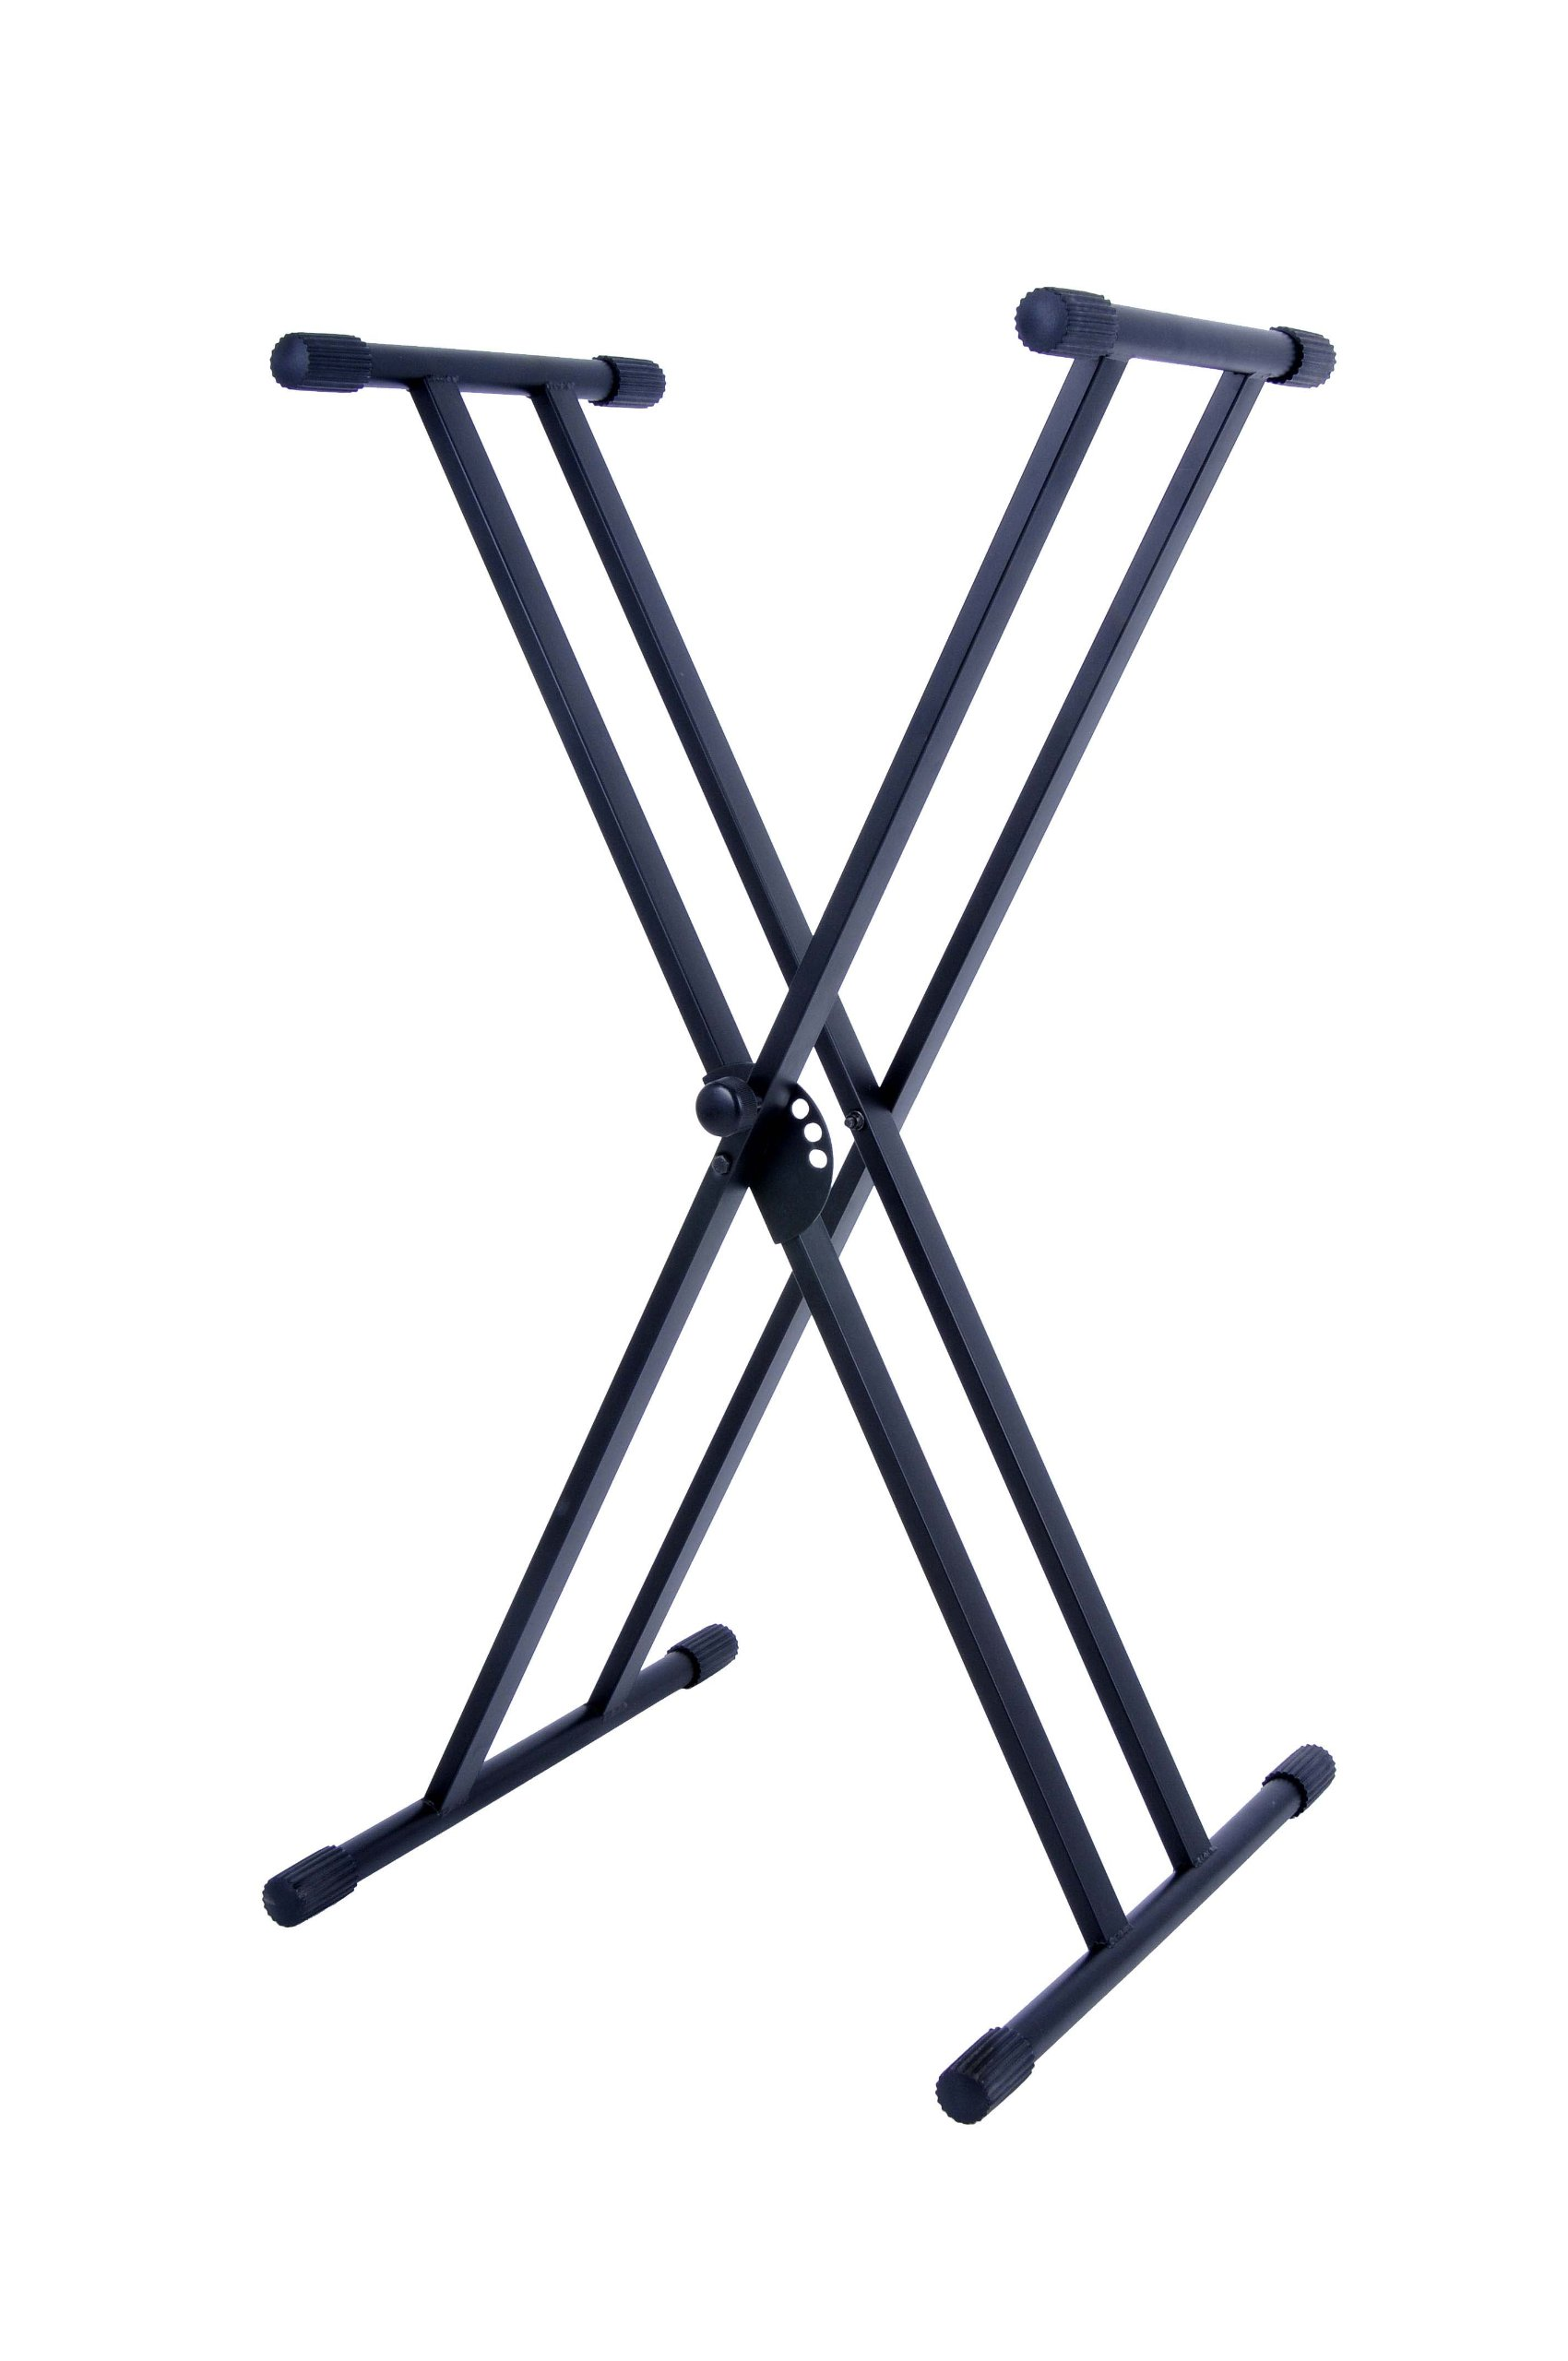 Stage Rocker Powered by Hamilton SR524200 Double X Style Keyboard Stand - Black